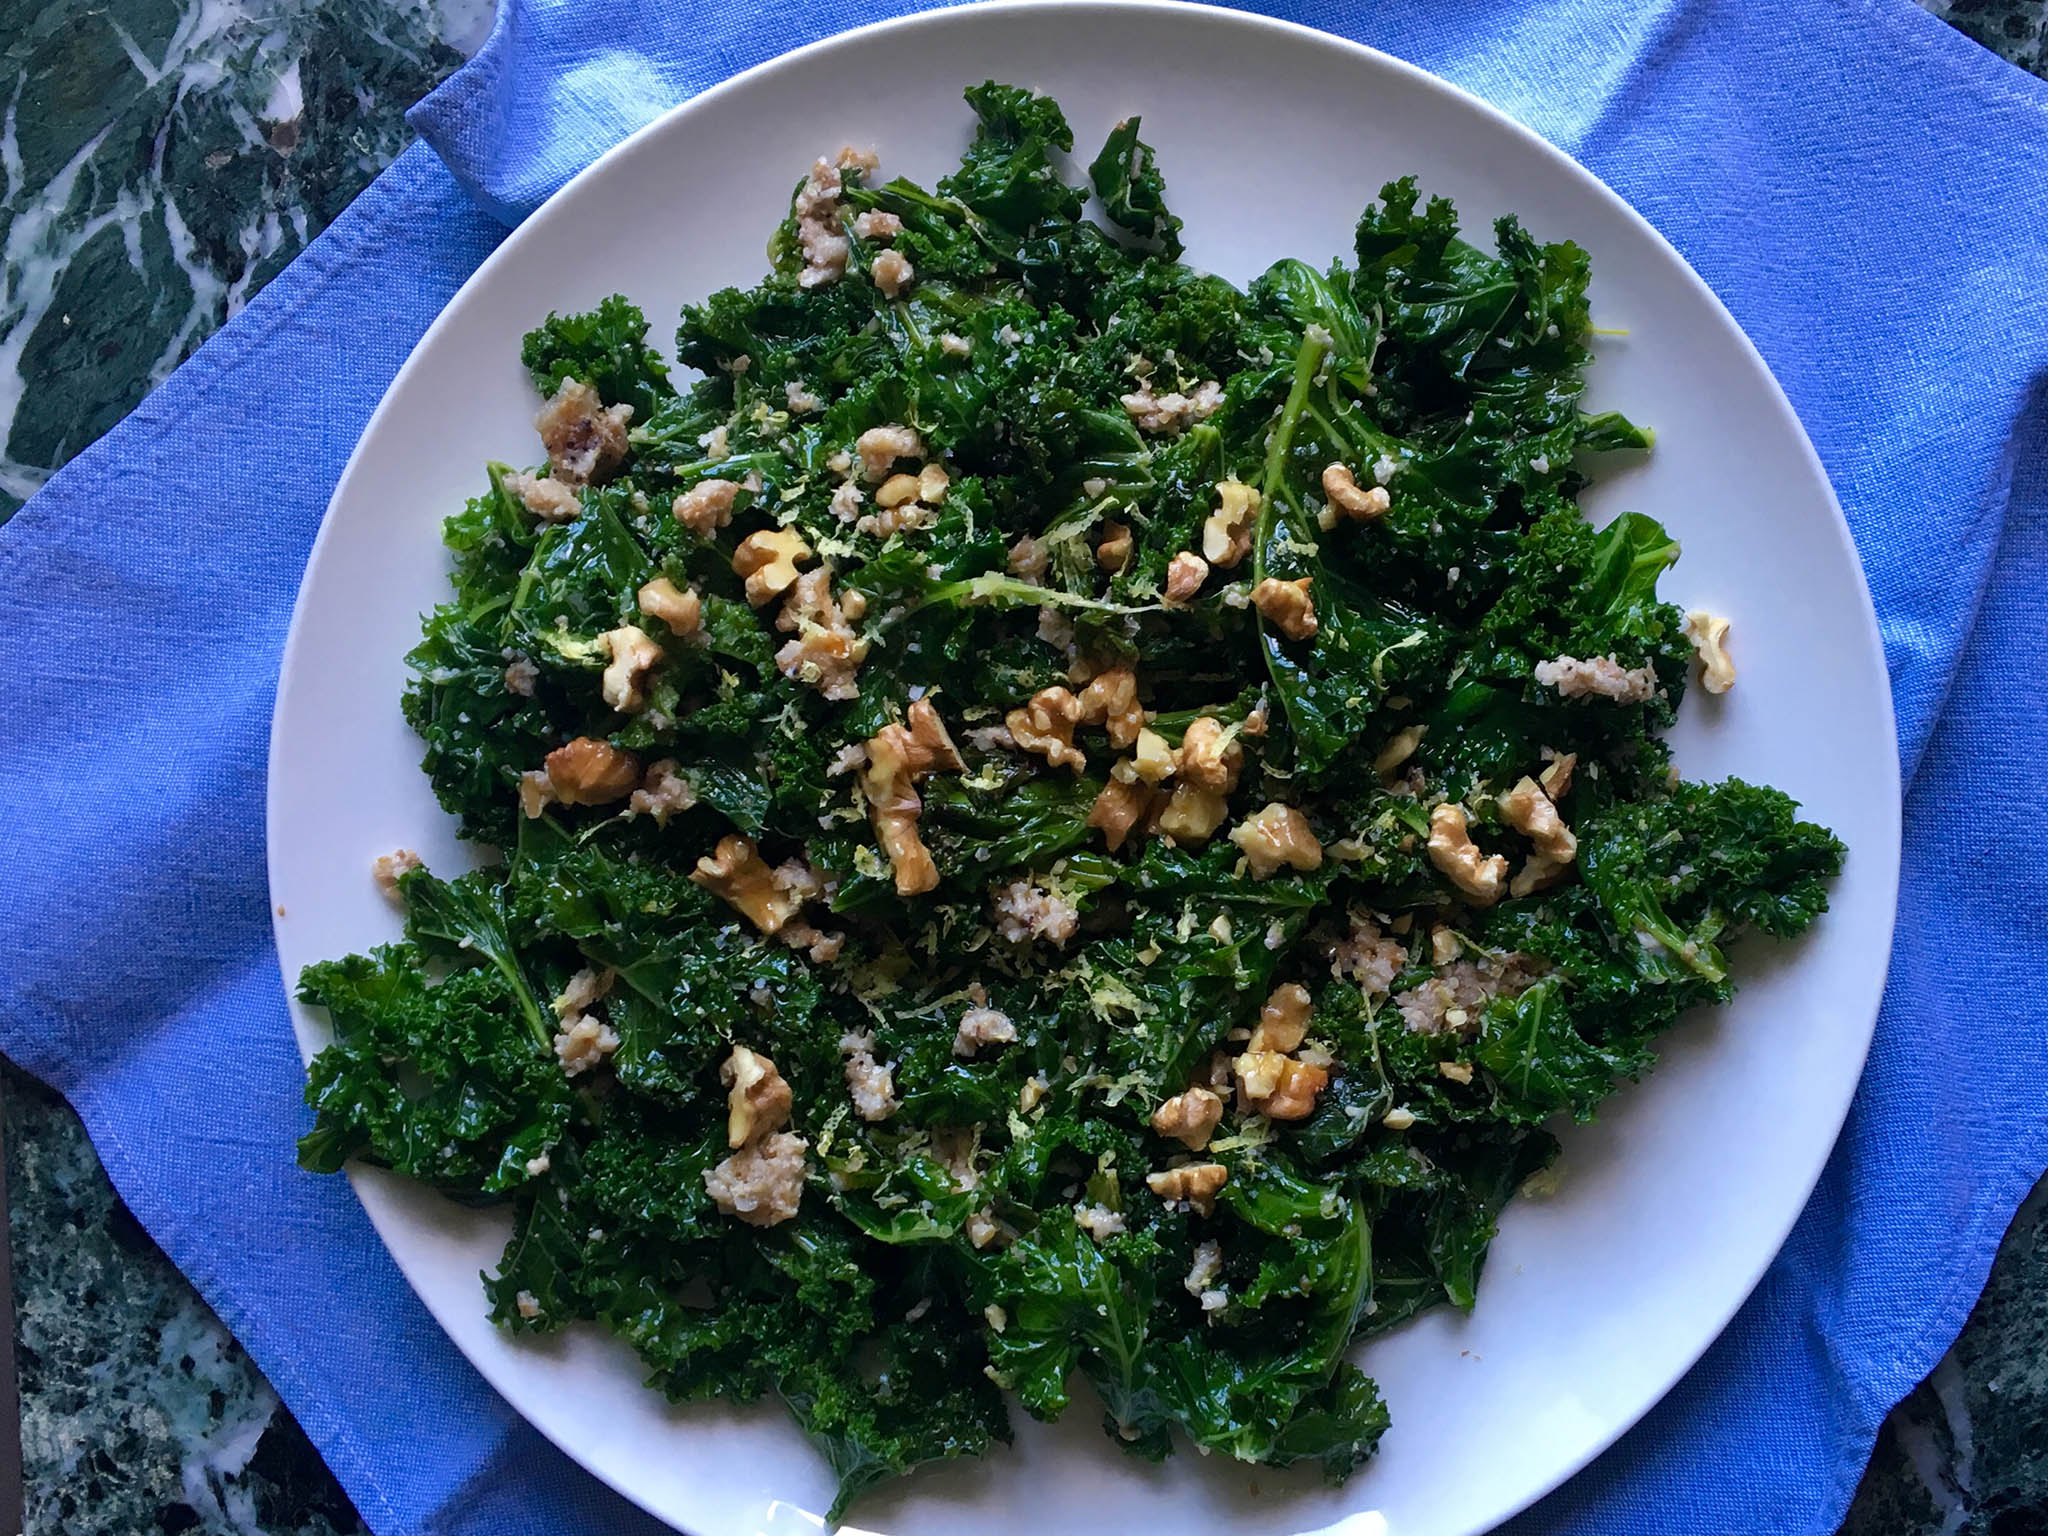 How to make sauteed kale with lemon-walnut sauce 1